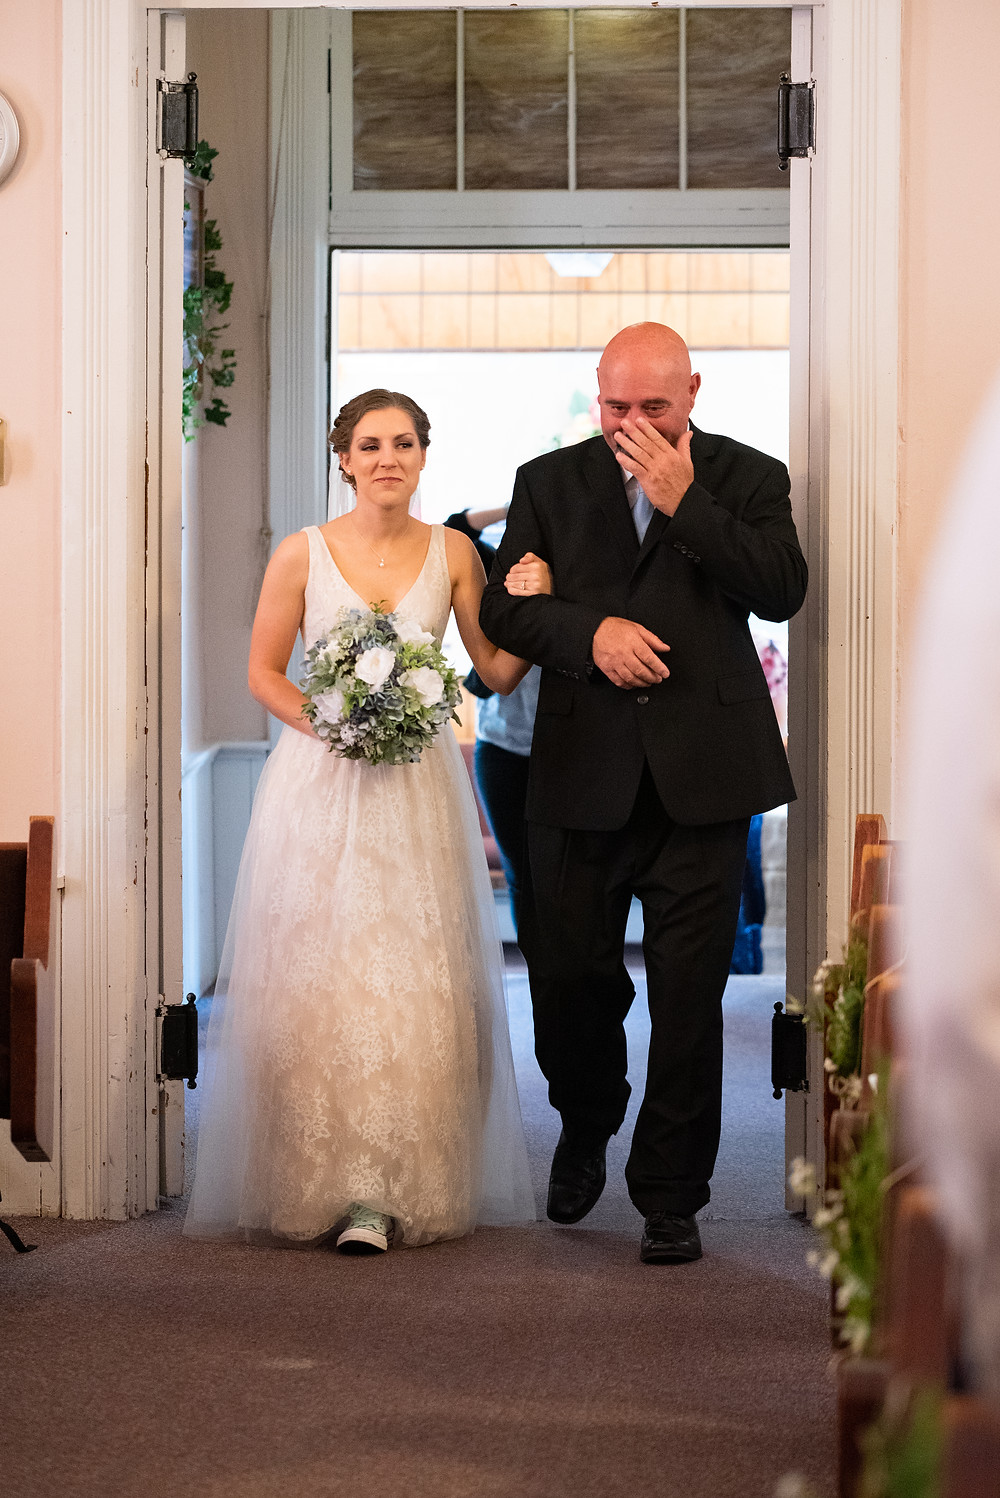 Dad walking daughter down aisle and wiping tears at Hookstown Free Methodist Church